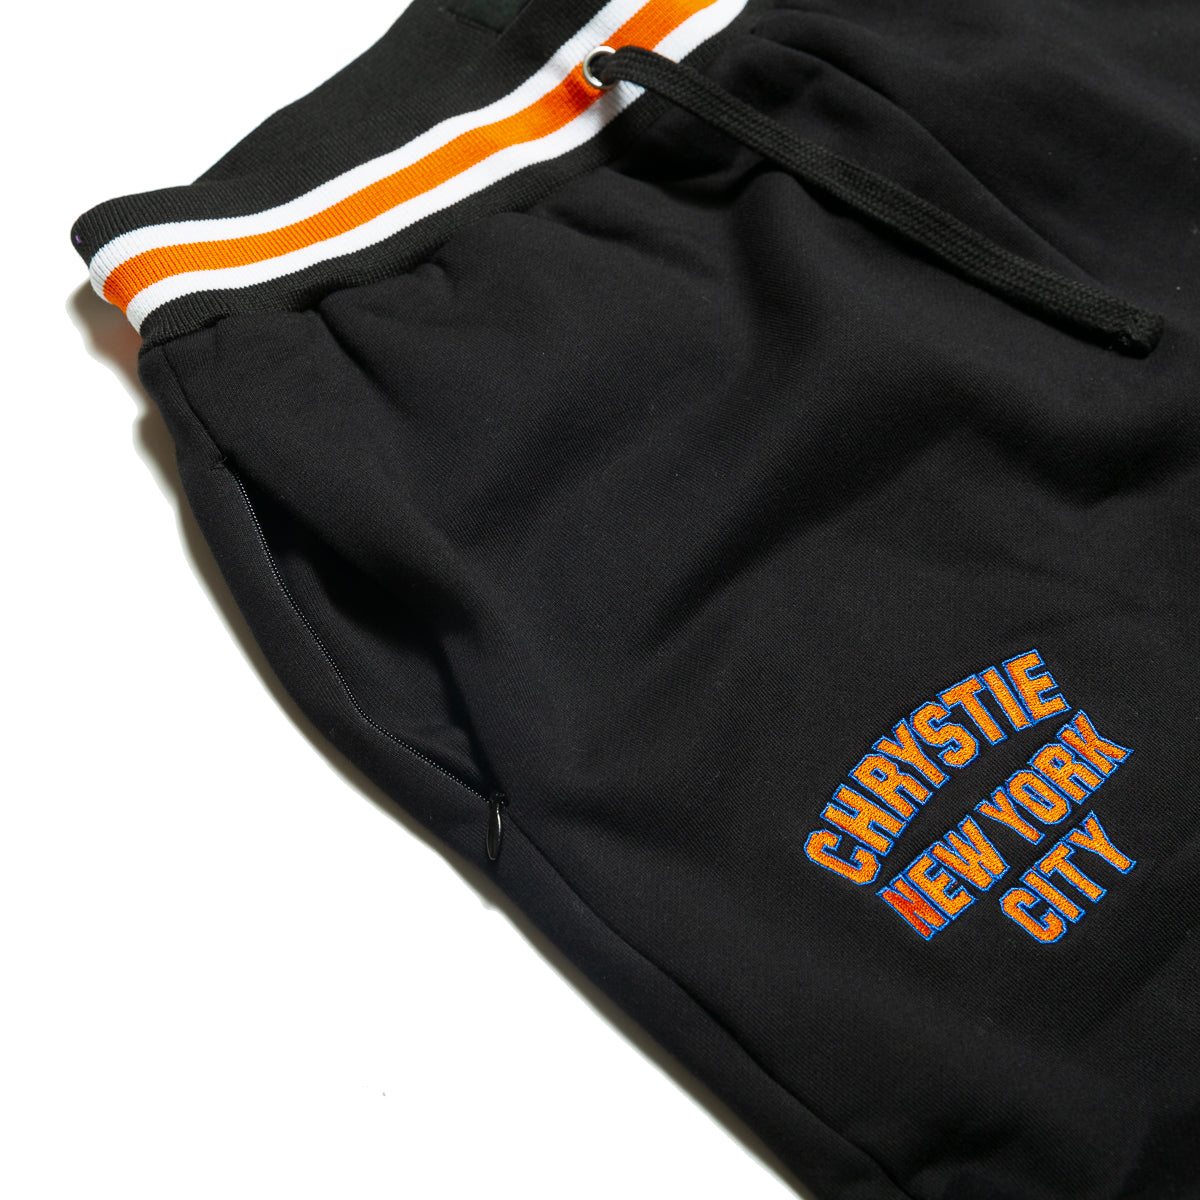 Load image into Gallery viewer, Varsity logo sweatpants_Black